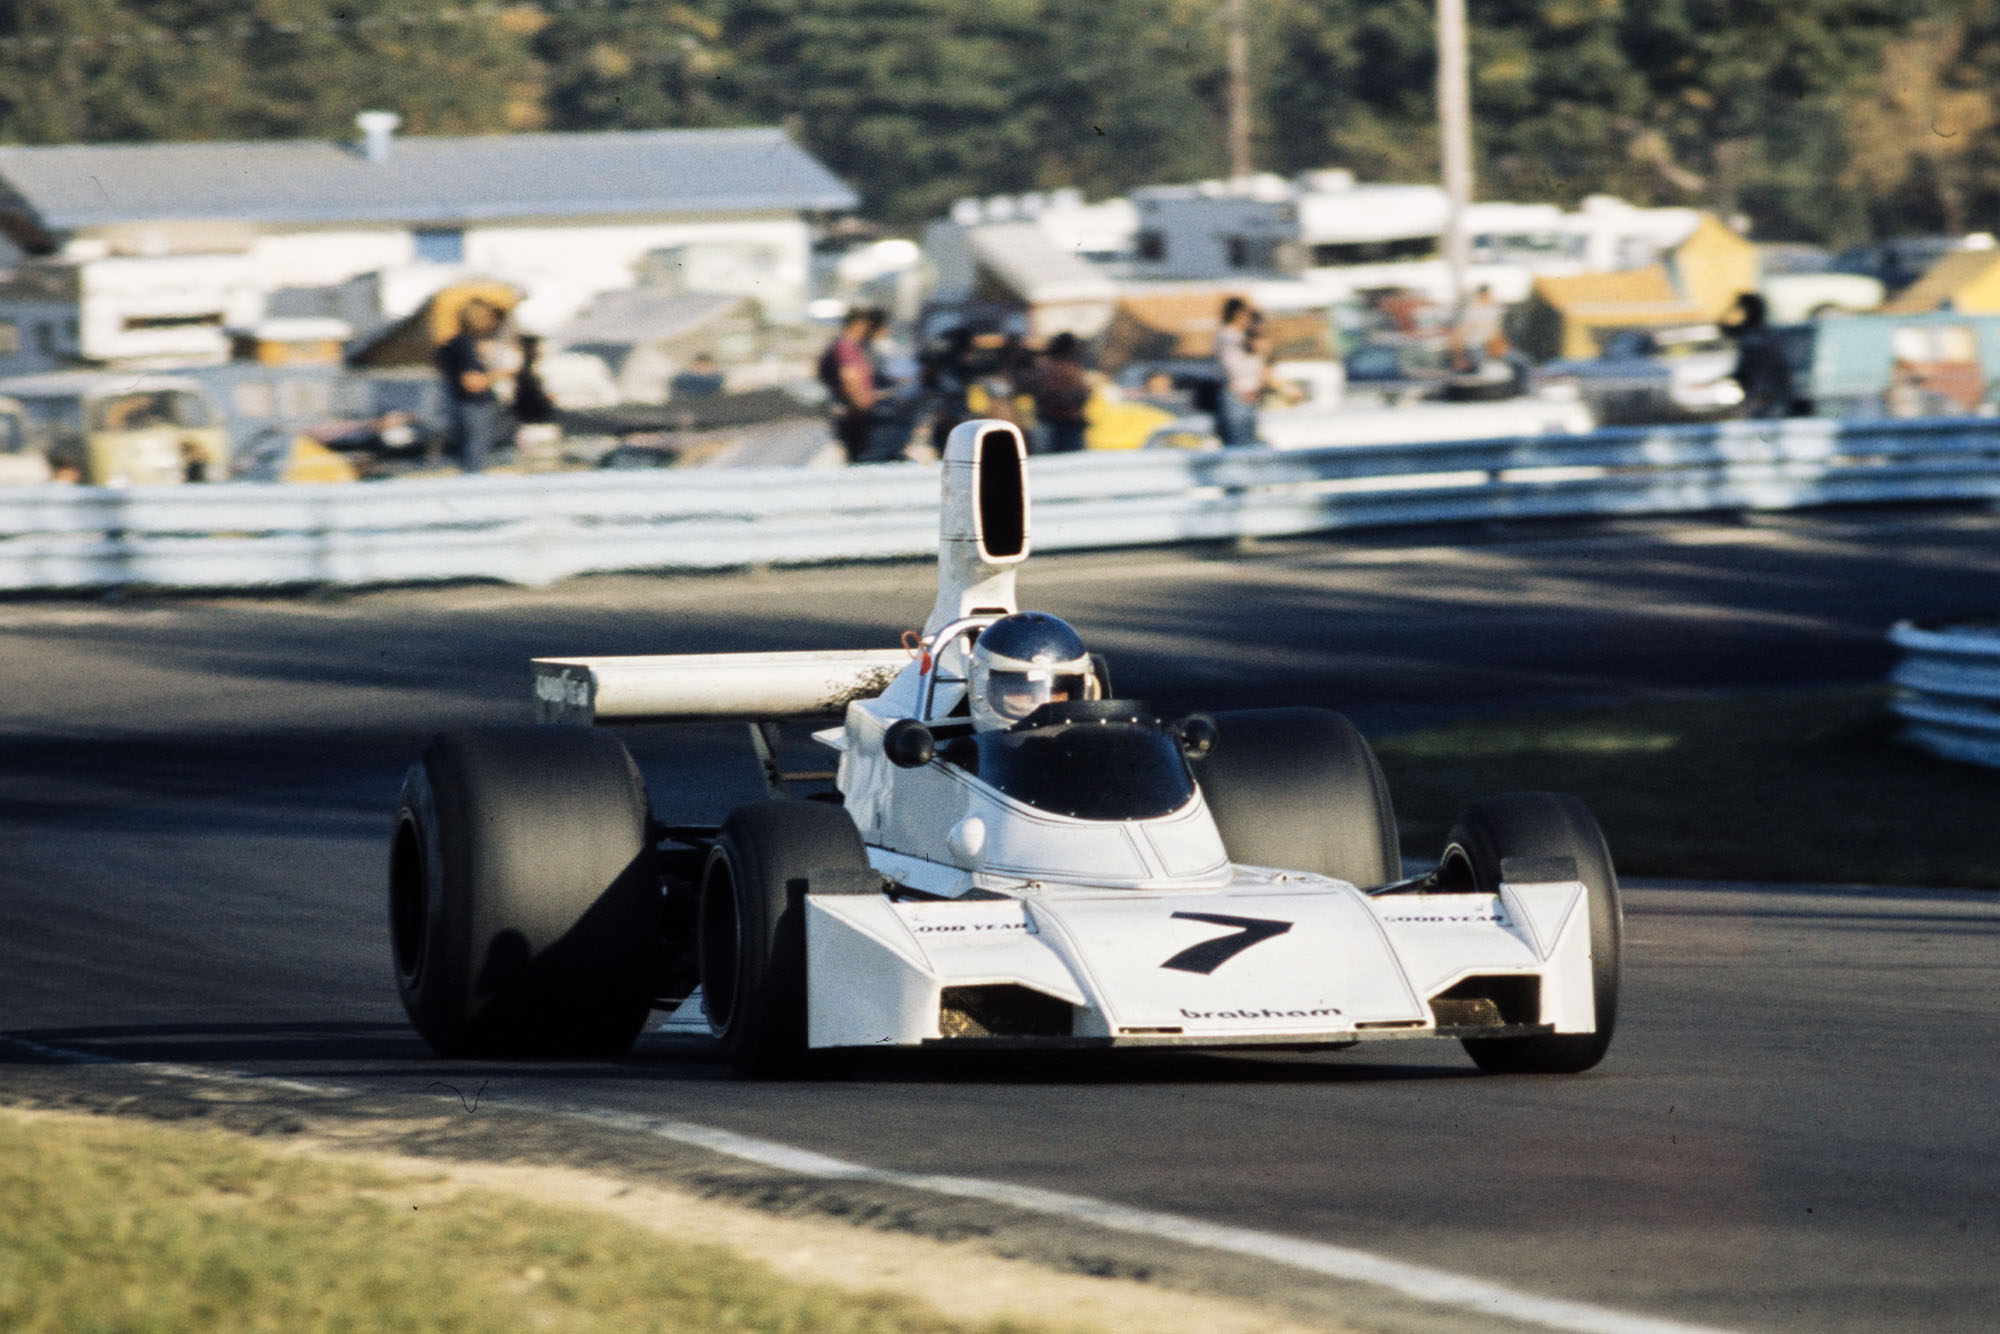 Carlos Reutemann (Brabham) competing at the 1974 United States Grand Prix